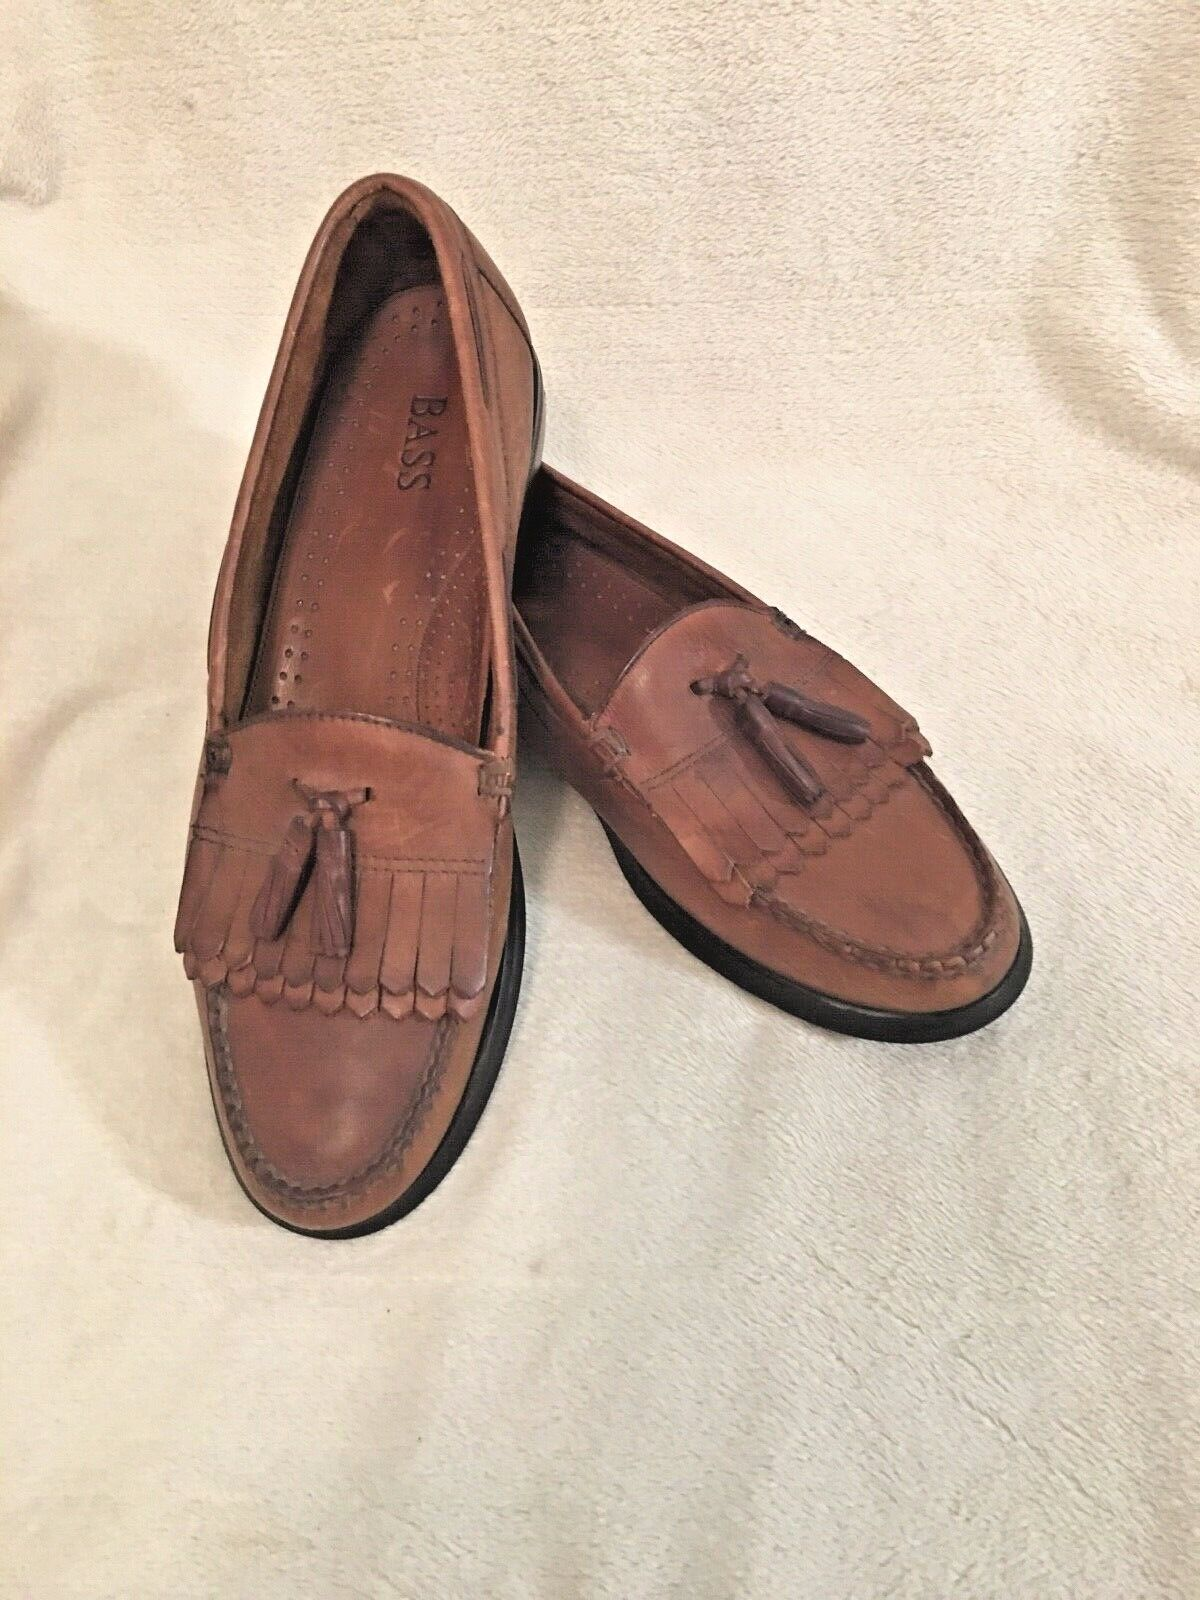 G.H Bass Casual Loafers color Brown Mens Size 12